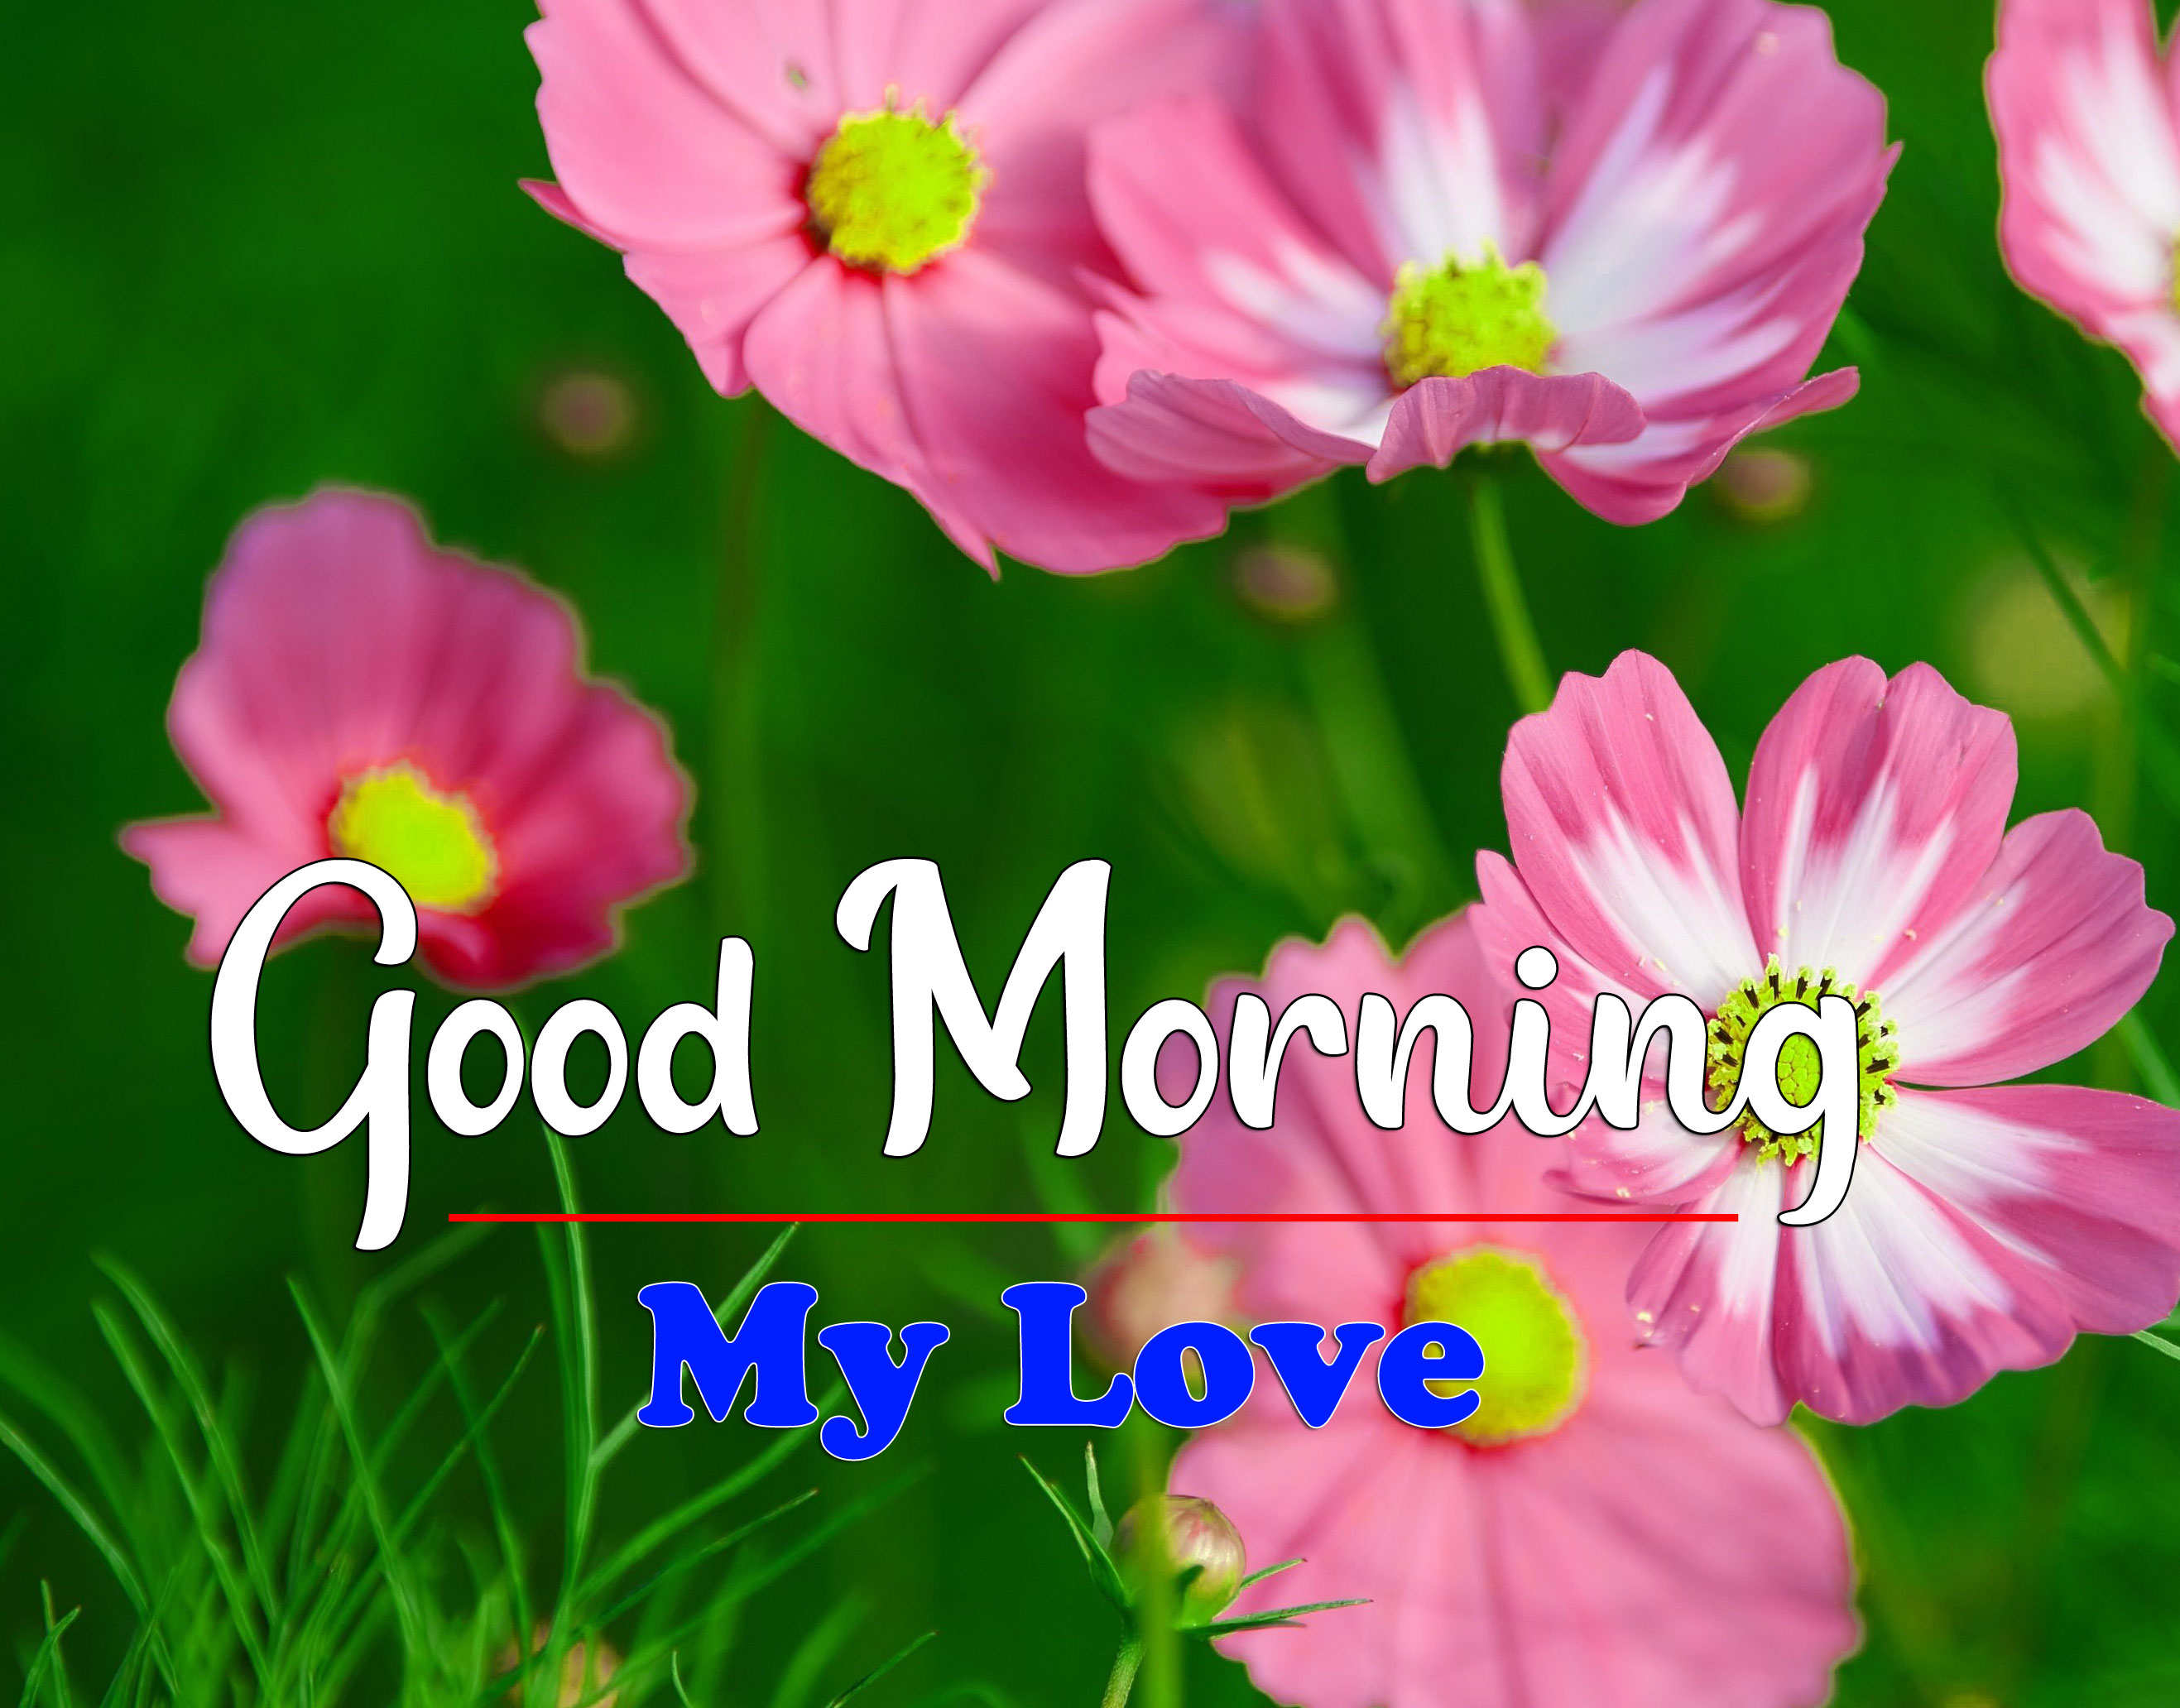 New Free HD Latest Good Morning Images